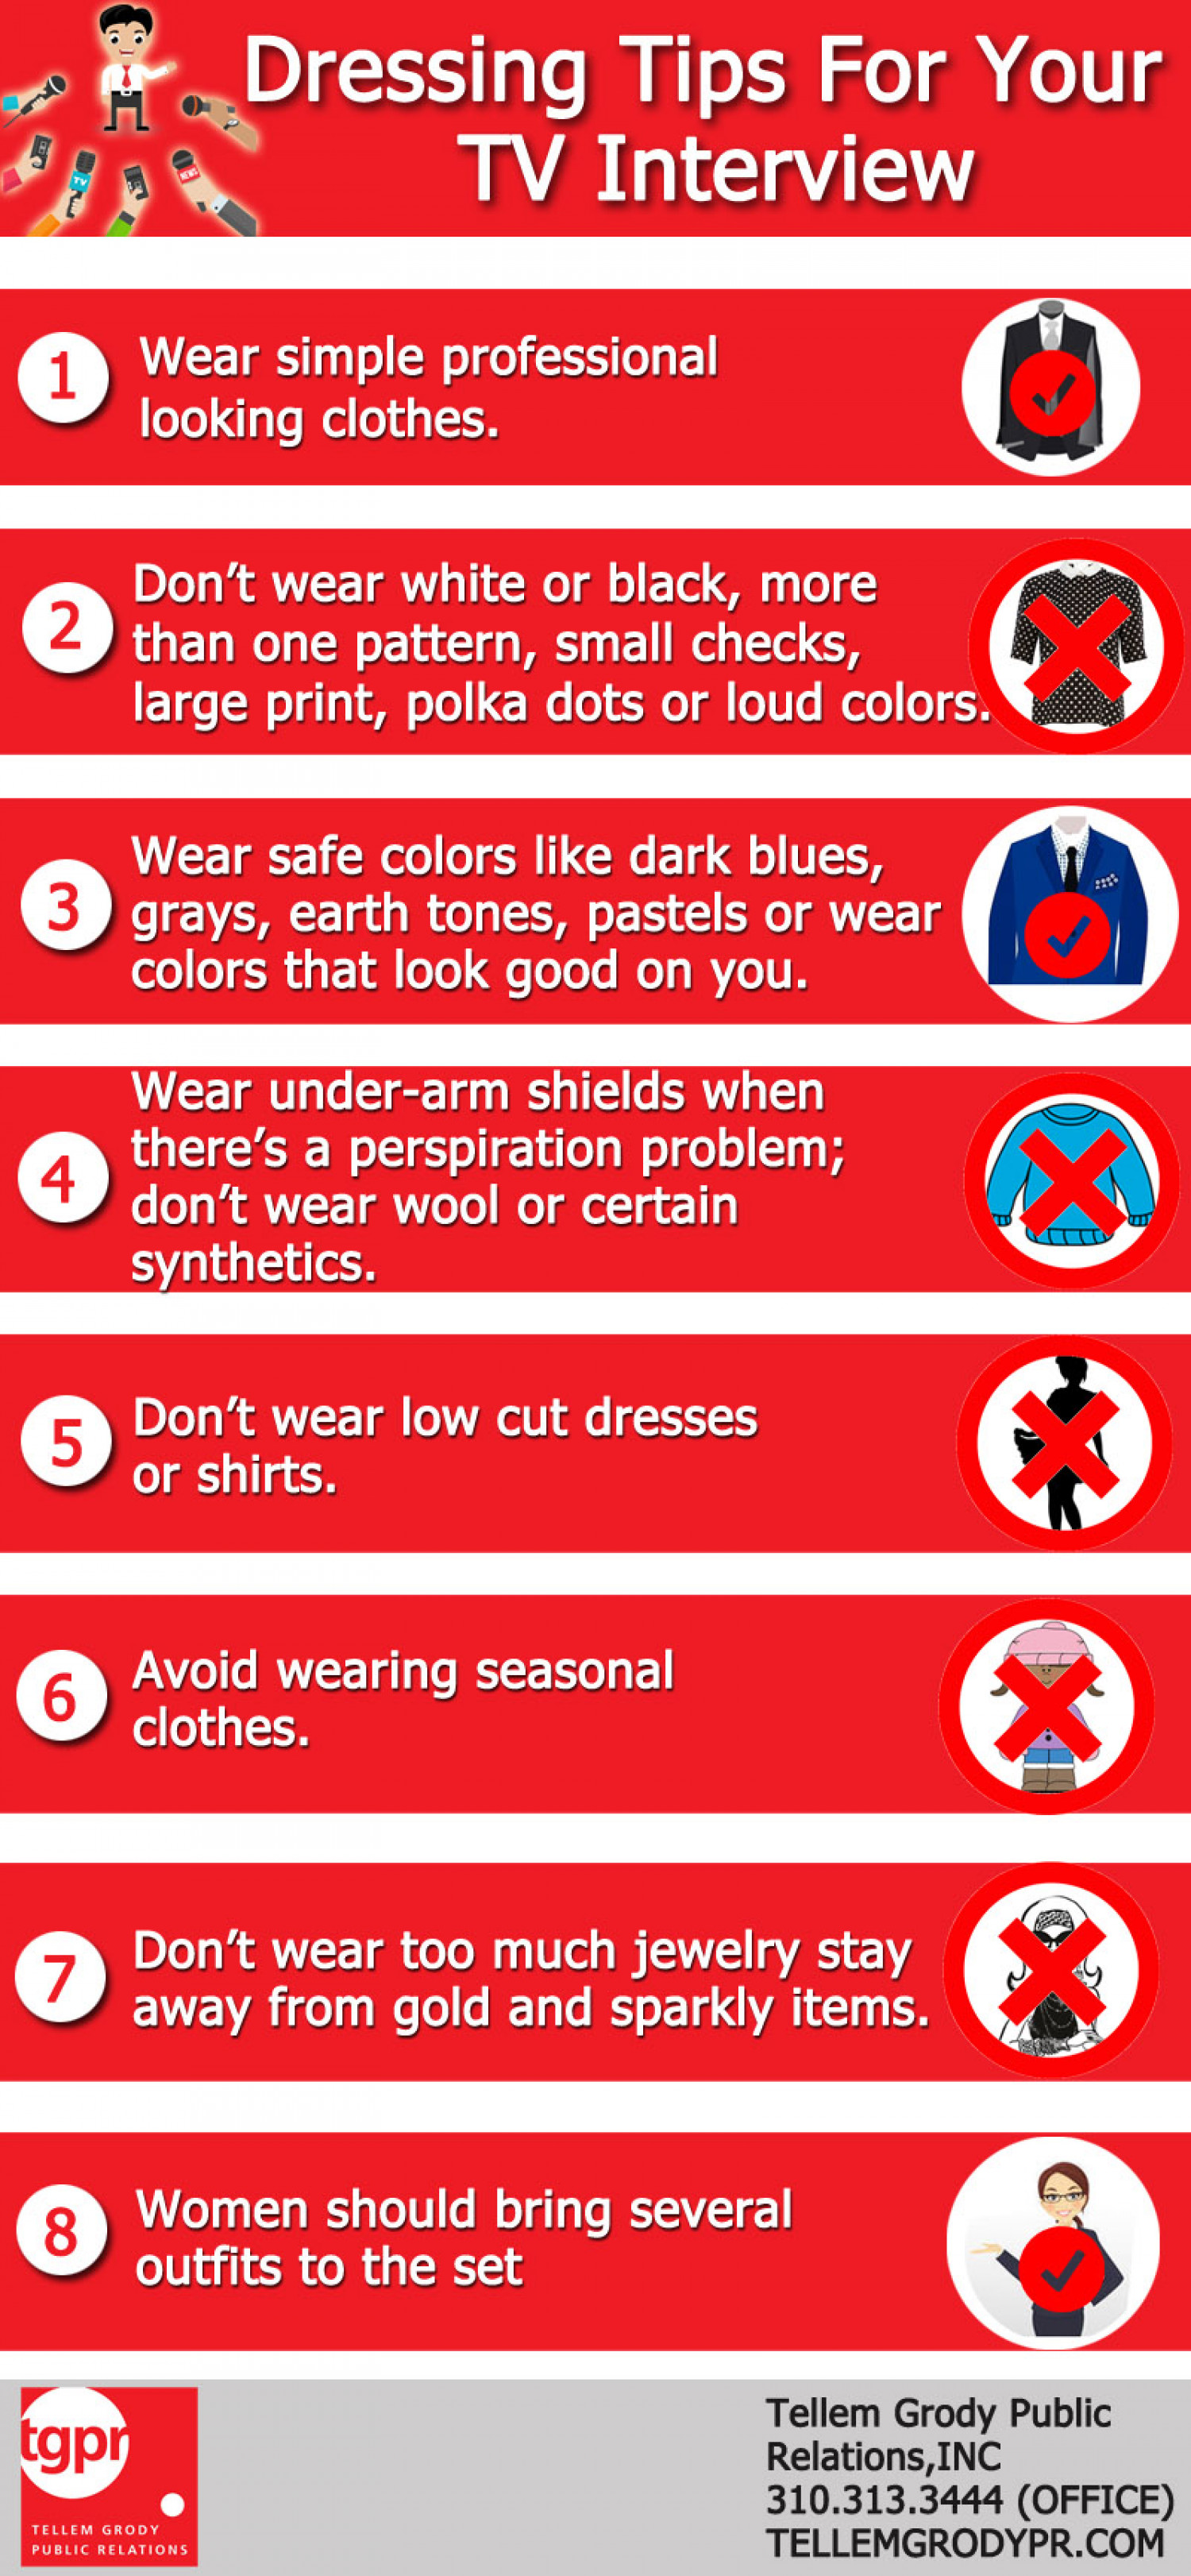 Dressing Tips For Your TV Interview Infographic